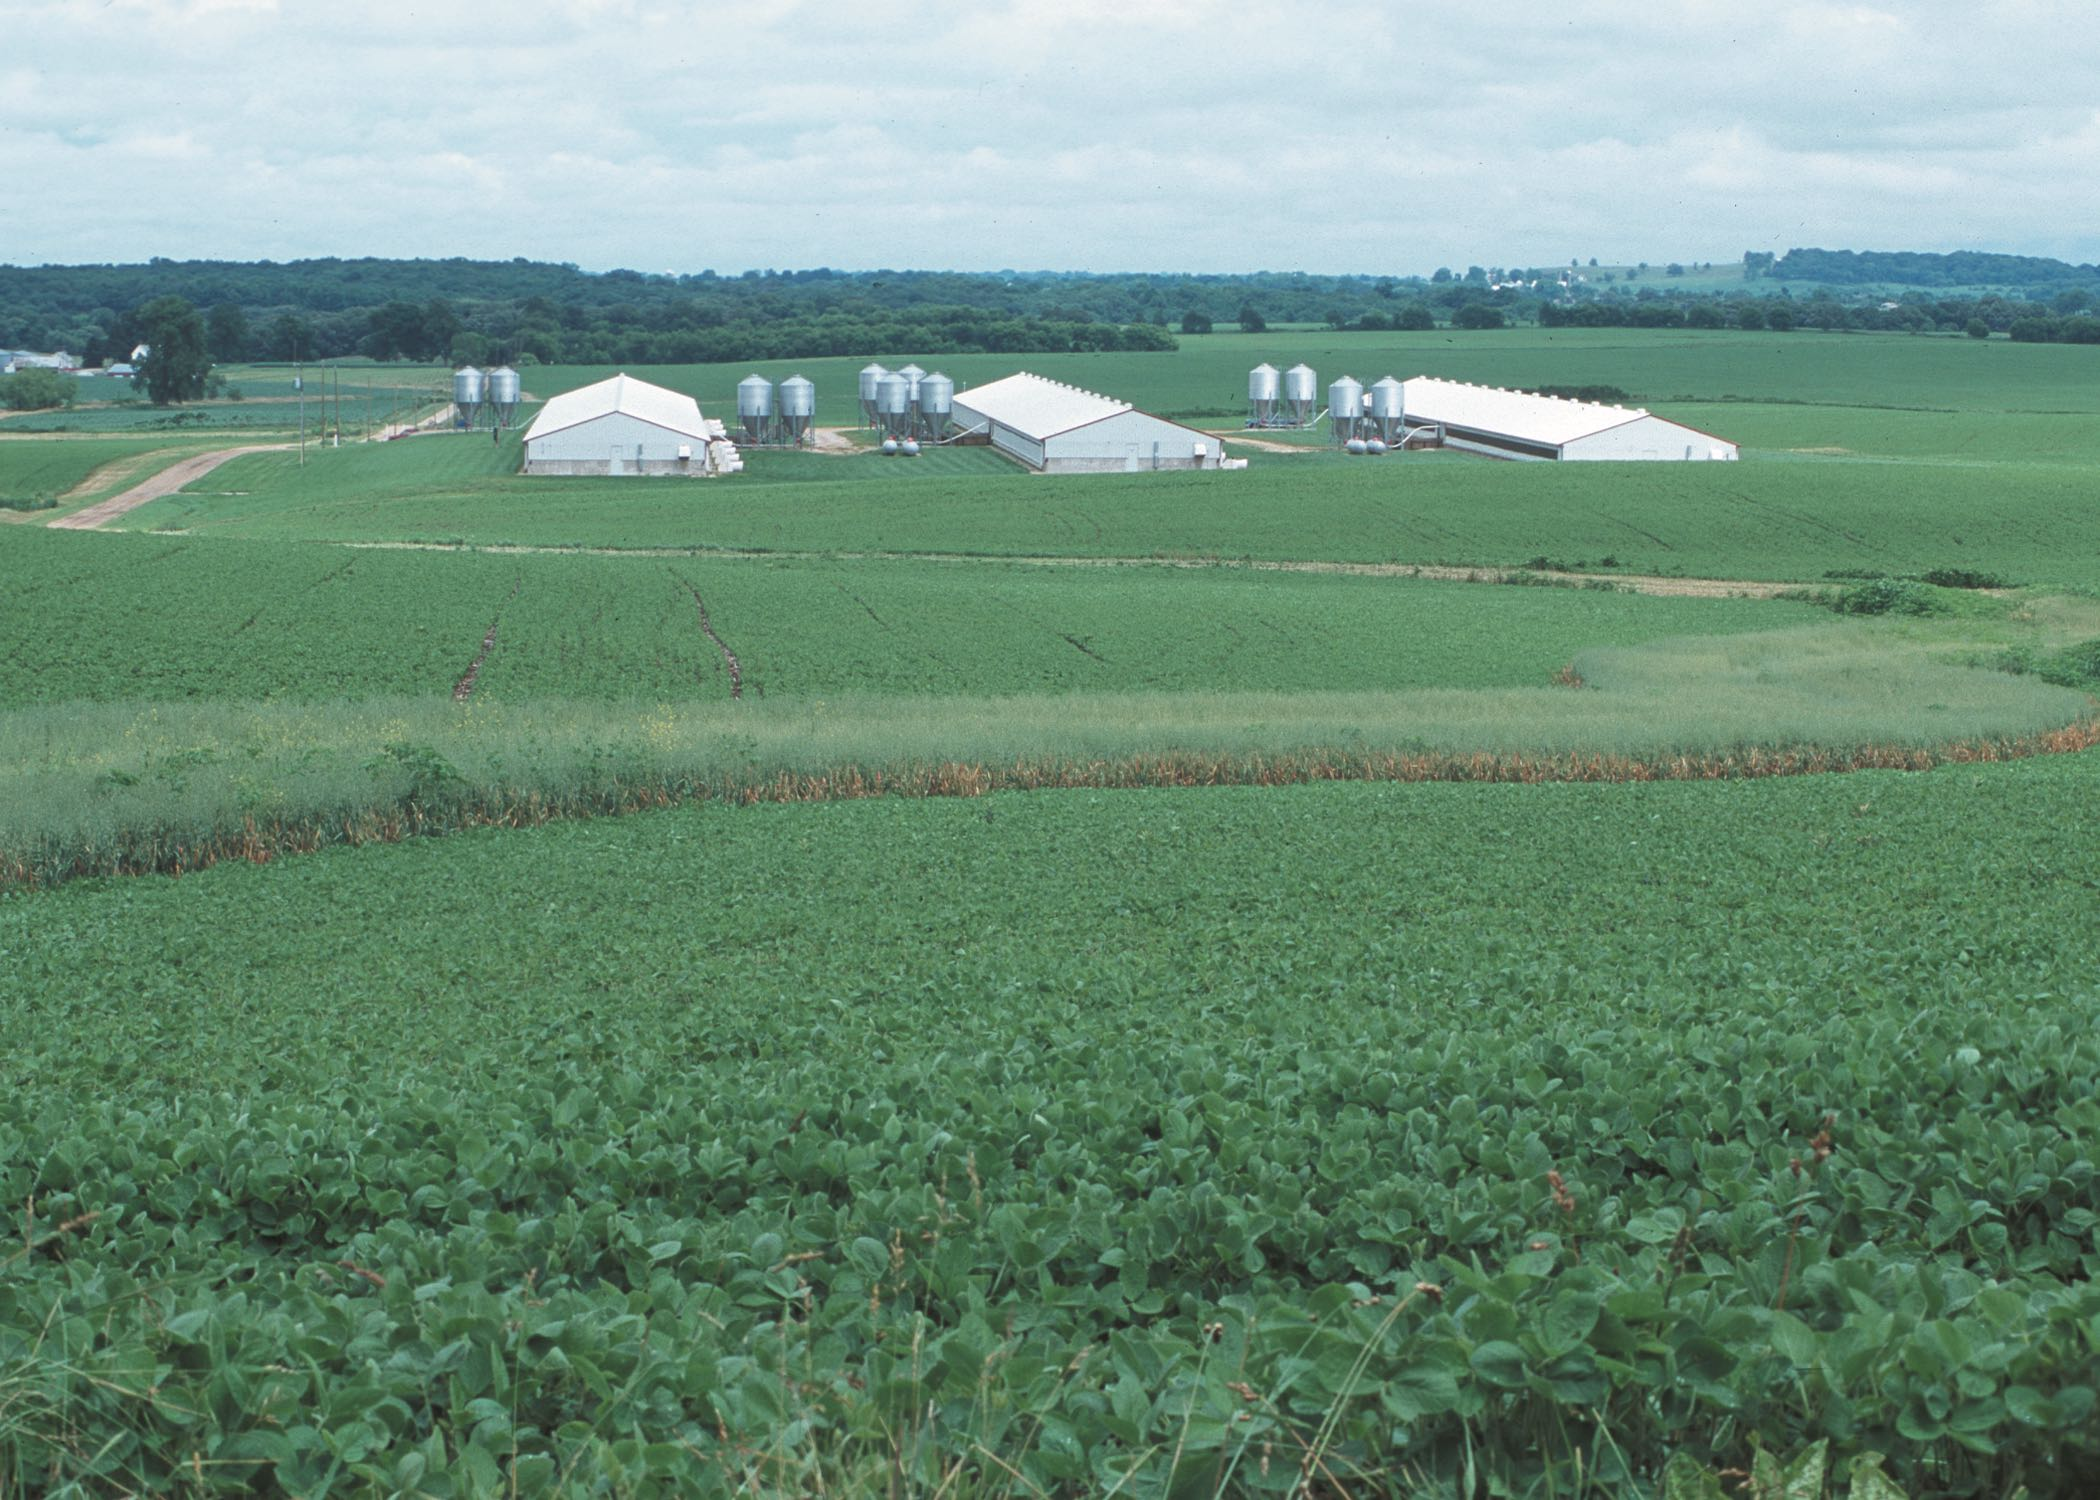 Farm scene with soybeans in foreground and swine barns behind